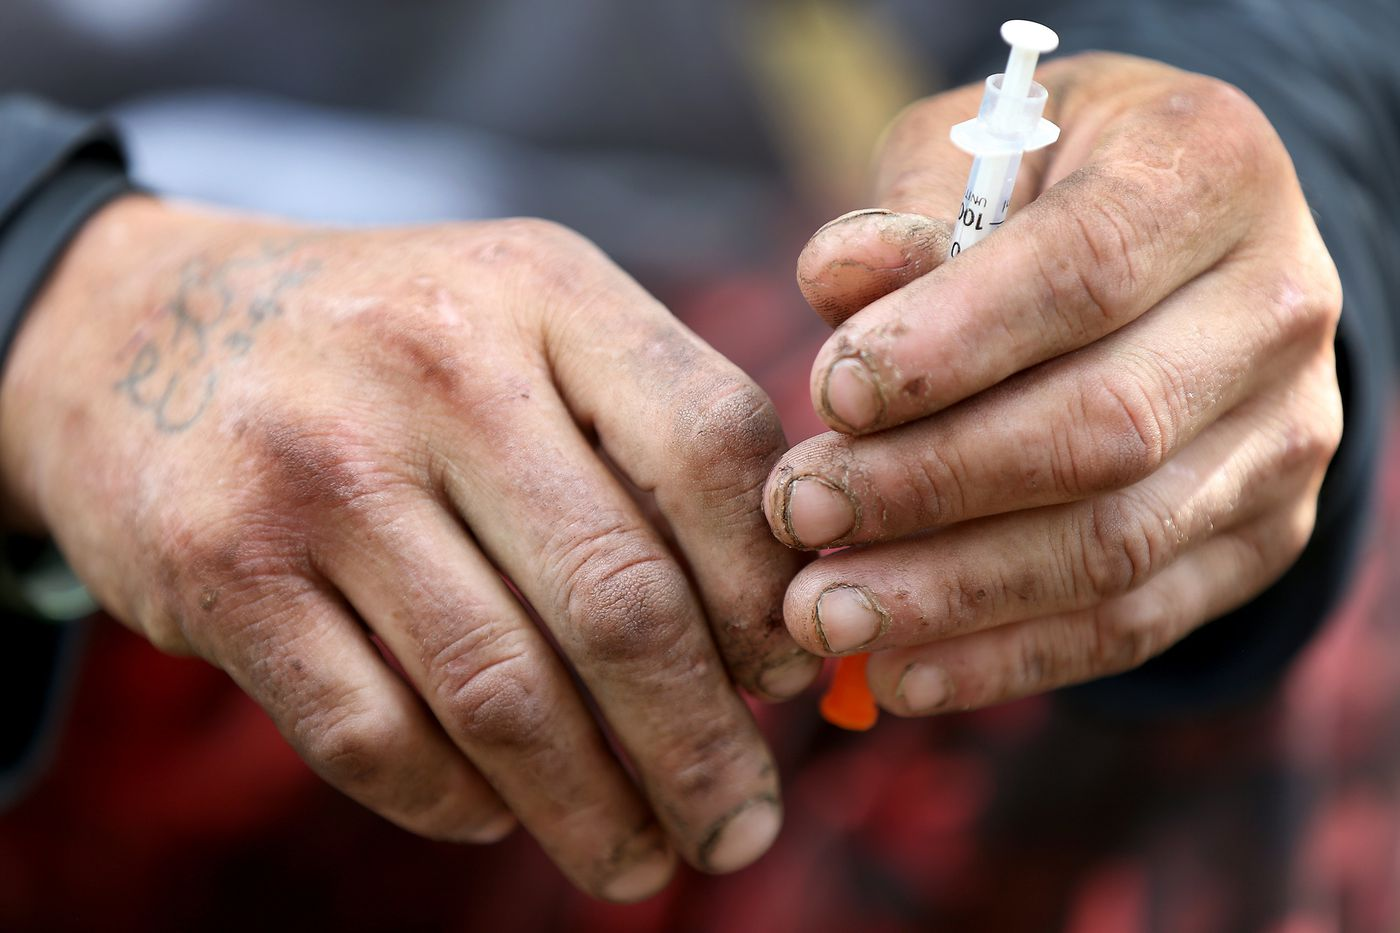 The opioid crisis: What we don't know is killing us | Opinion